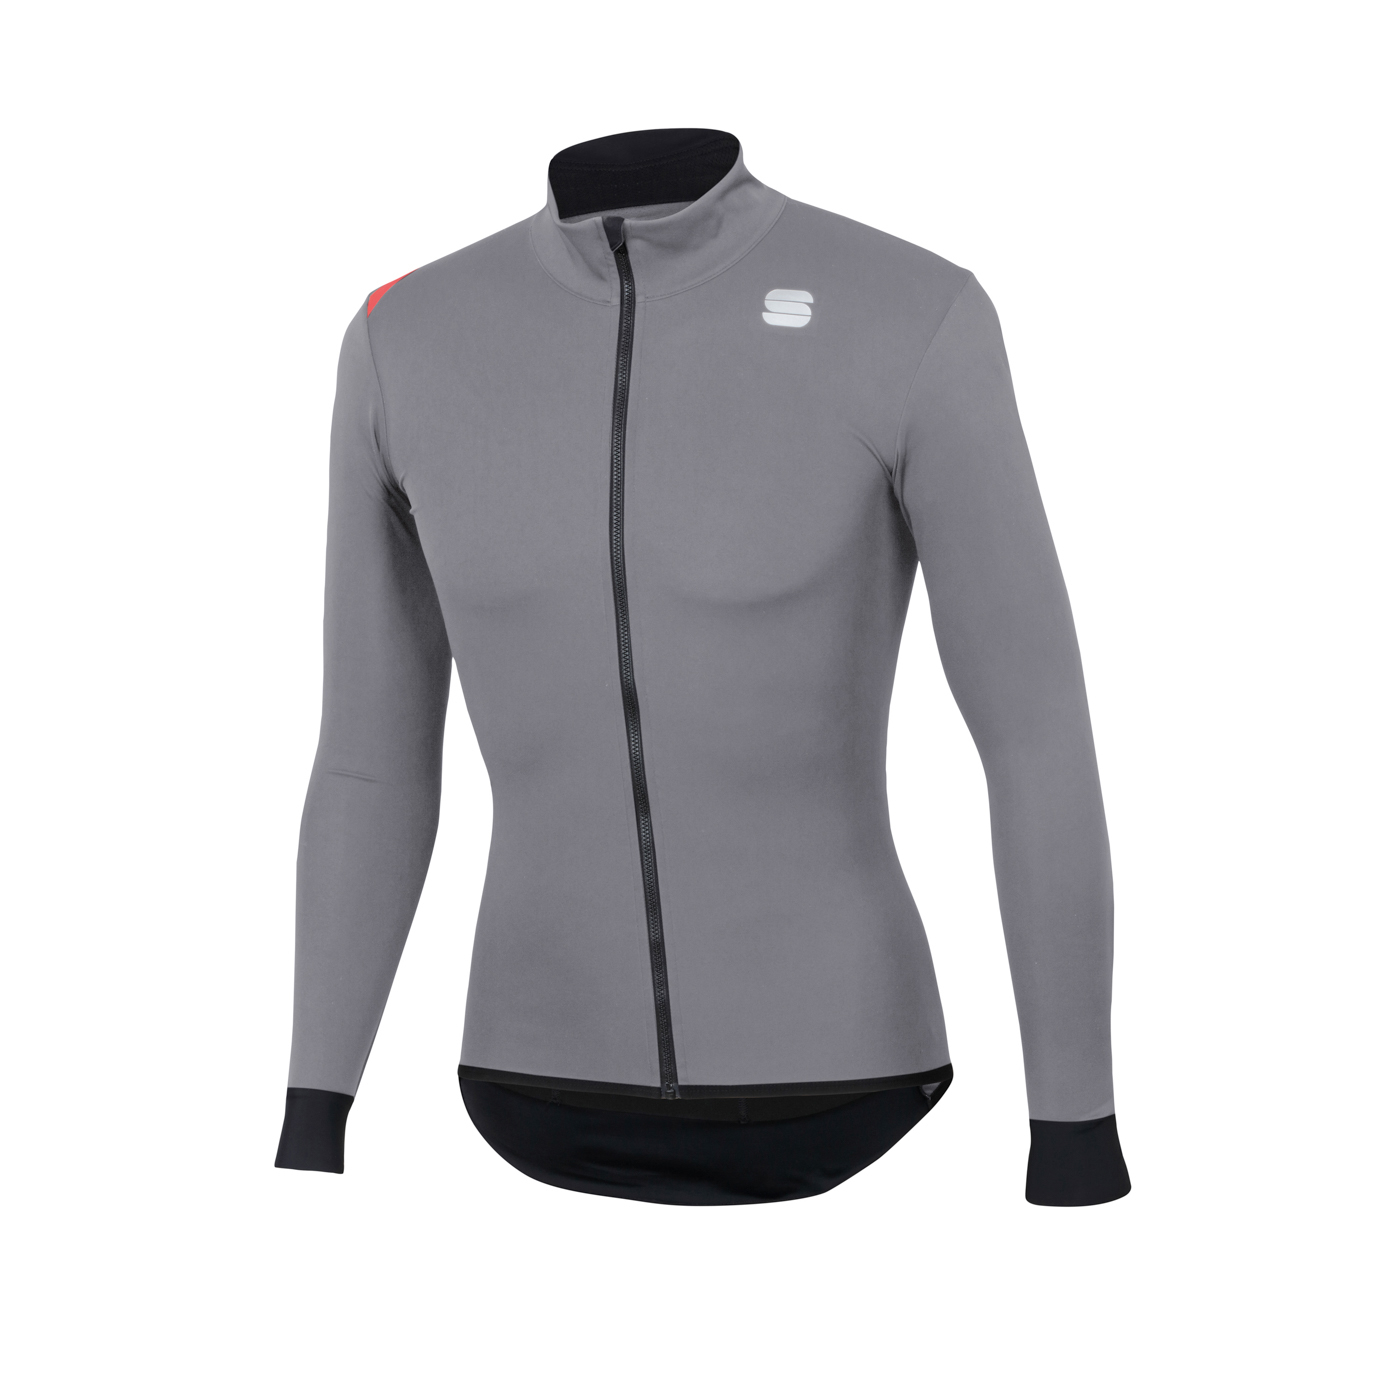 | Sportful Fietsjack Lange mouwen Zeer sterk waterafstotend voor Heren Zwart - SF Fiandre Light No Rain Jacket-Black